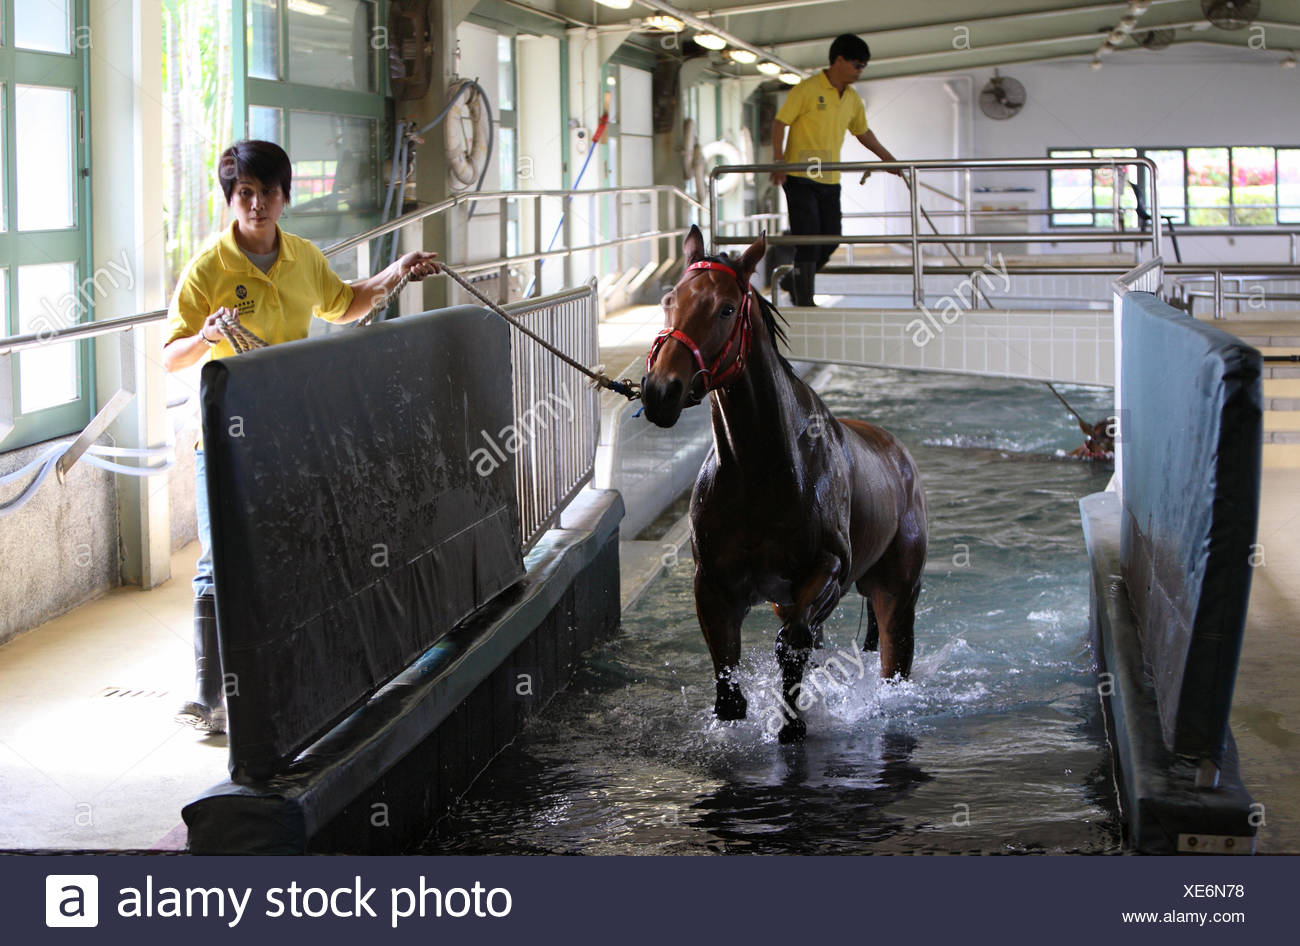 Hong Kong, China, after the horse is out of the water aquatic therapy pool - Stock Image